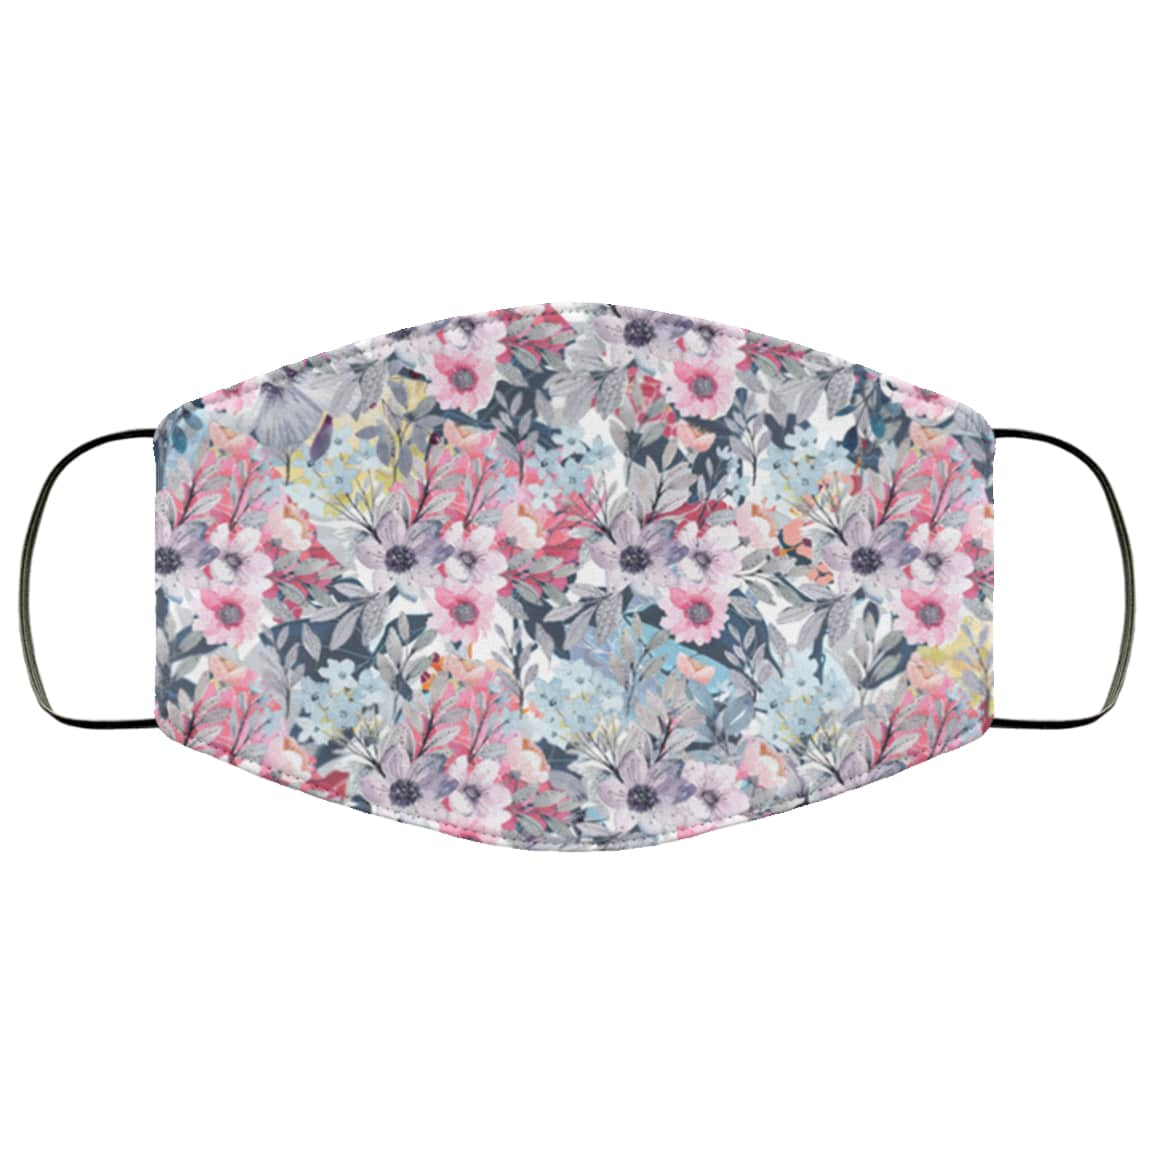 Purple flowers full over printed face mask 4